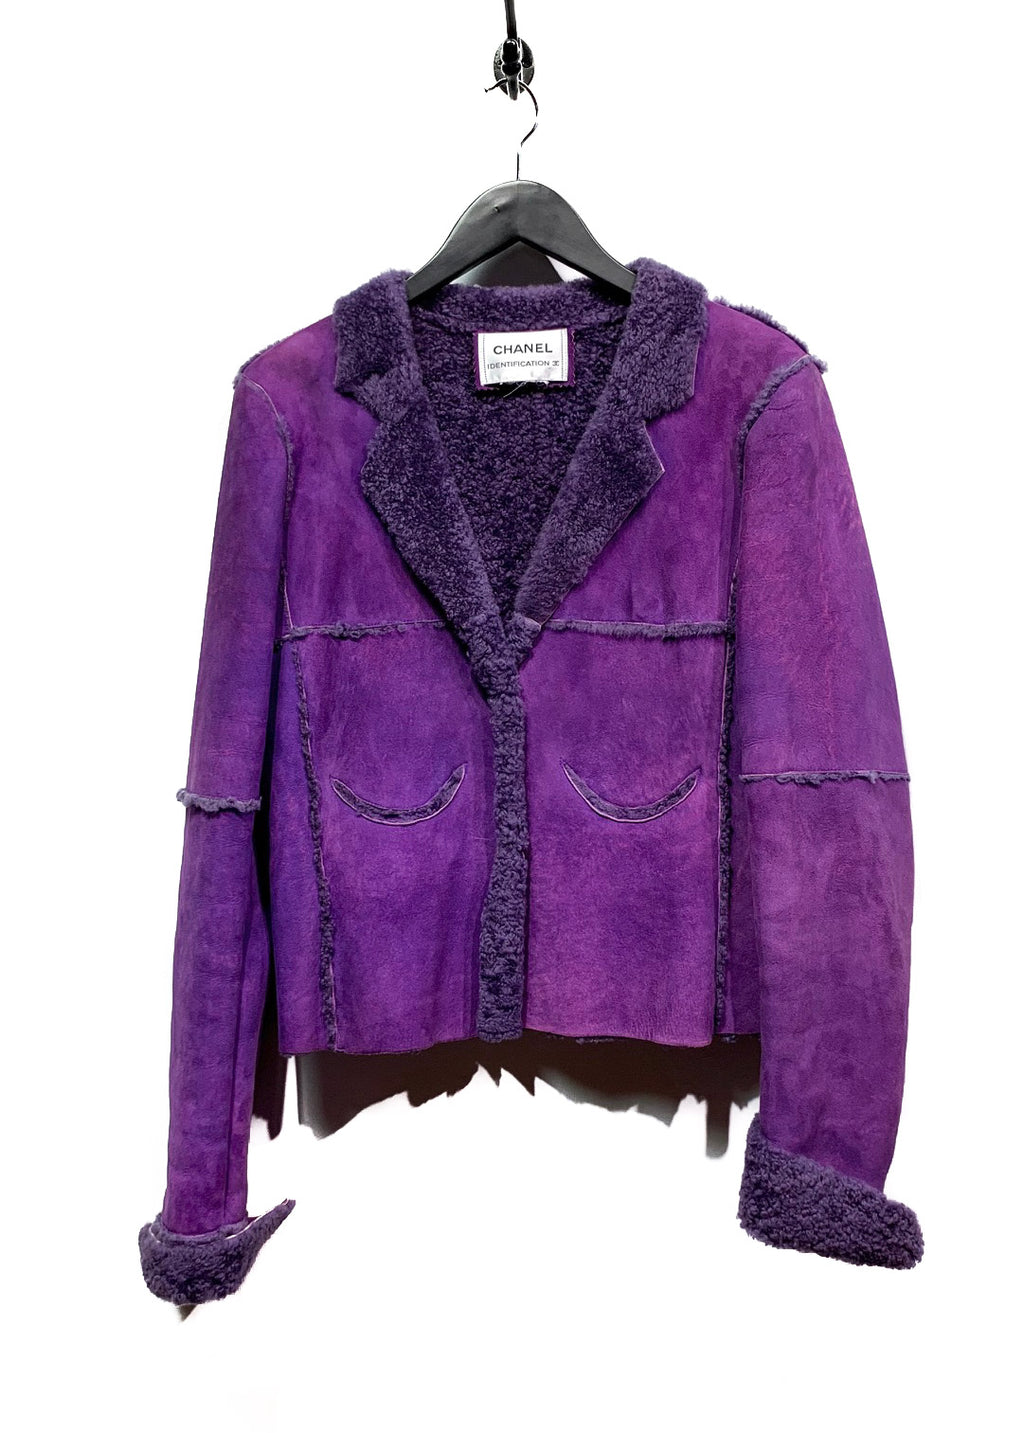 Chanel FW00 Vintage Purple Shearling Coat